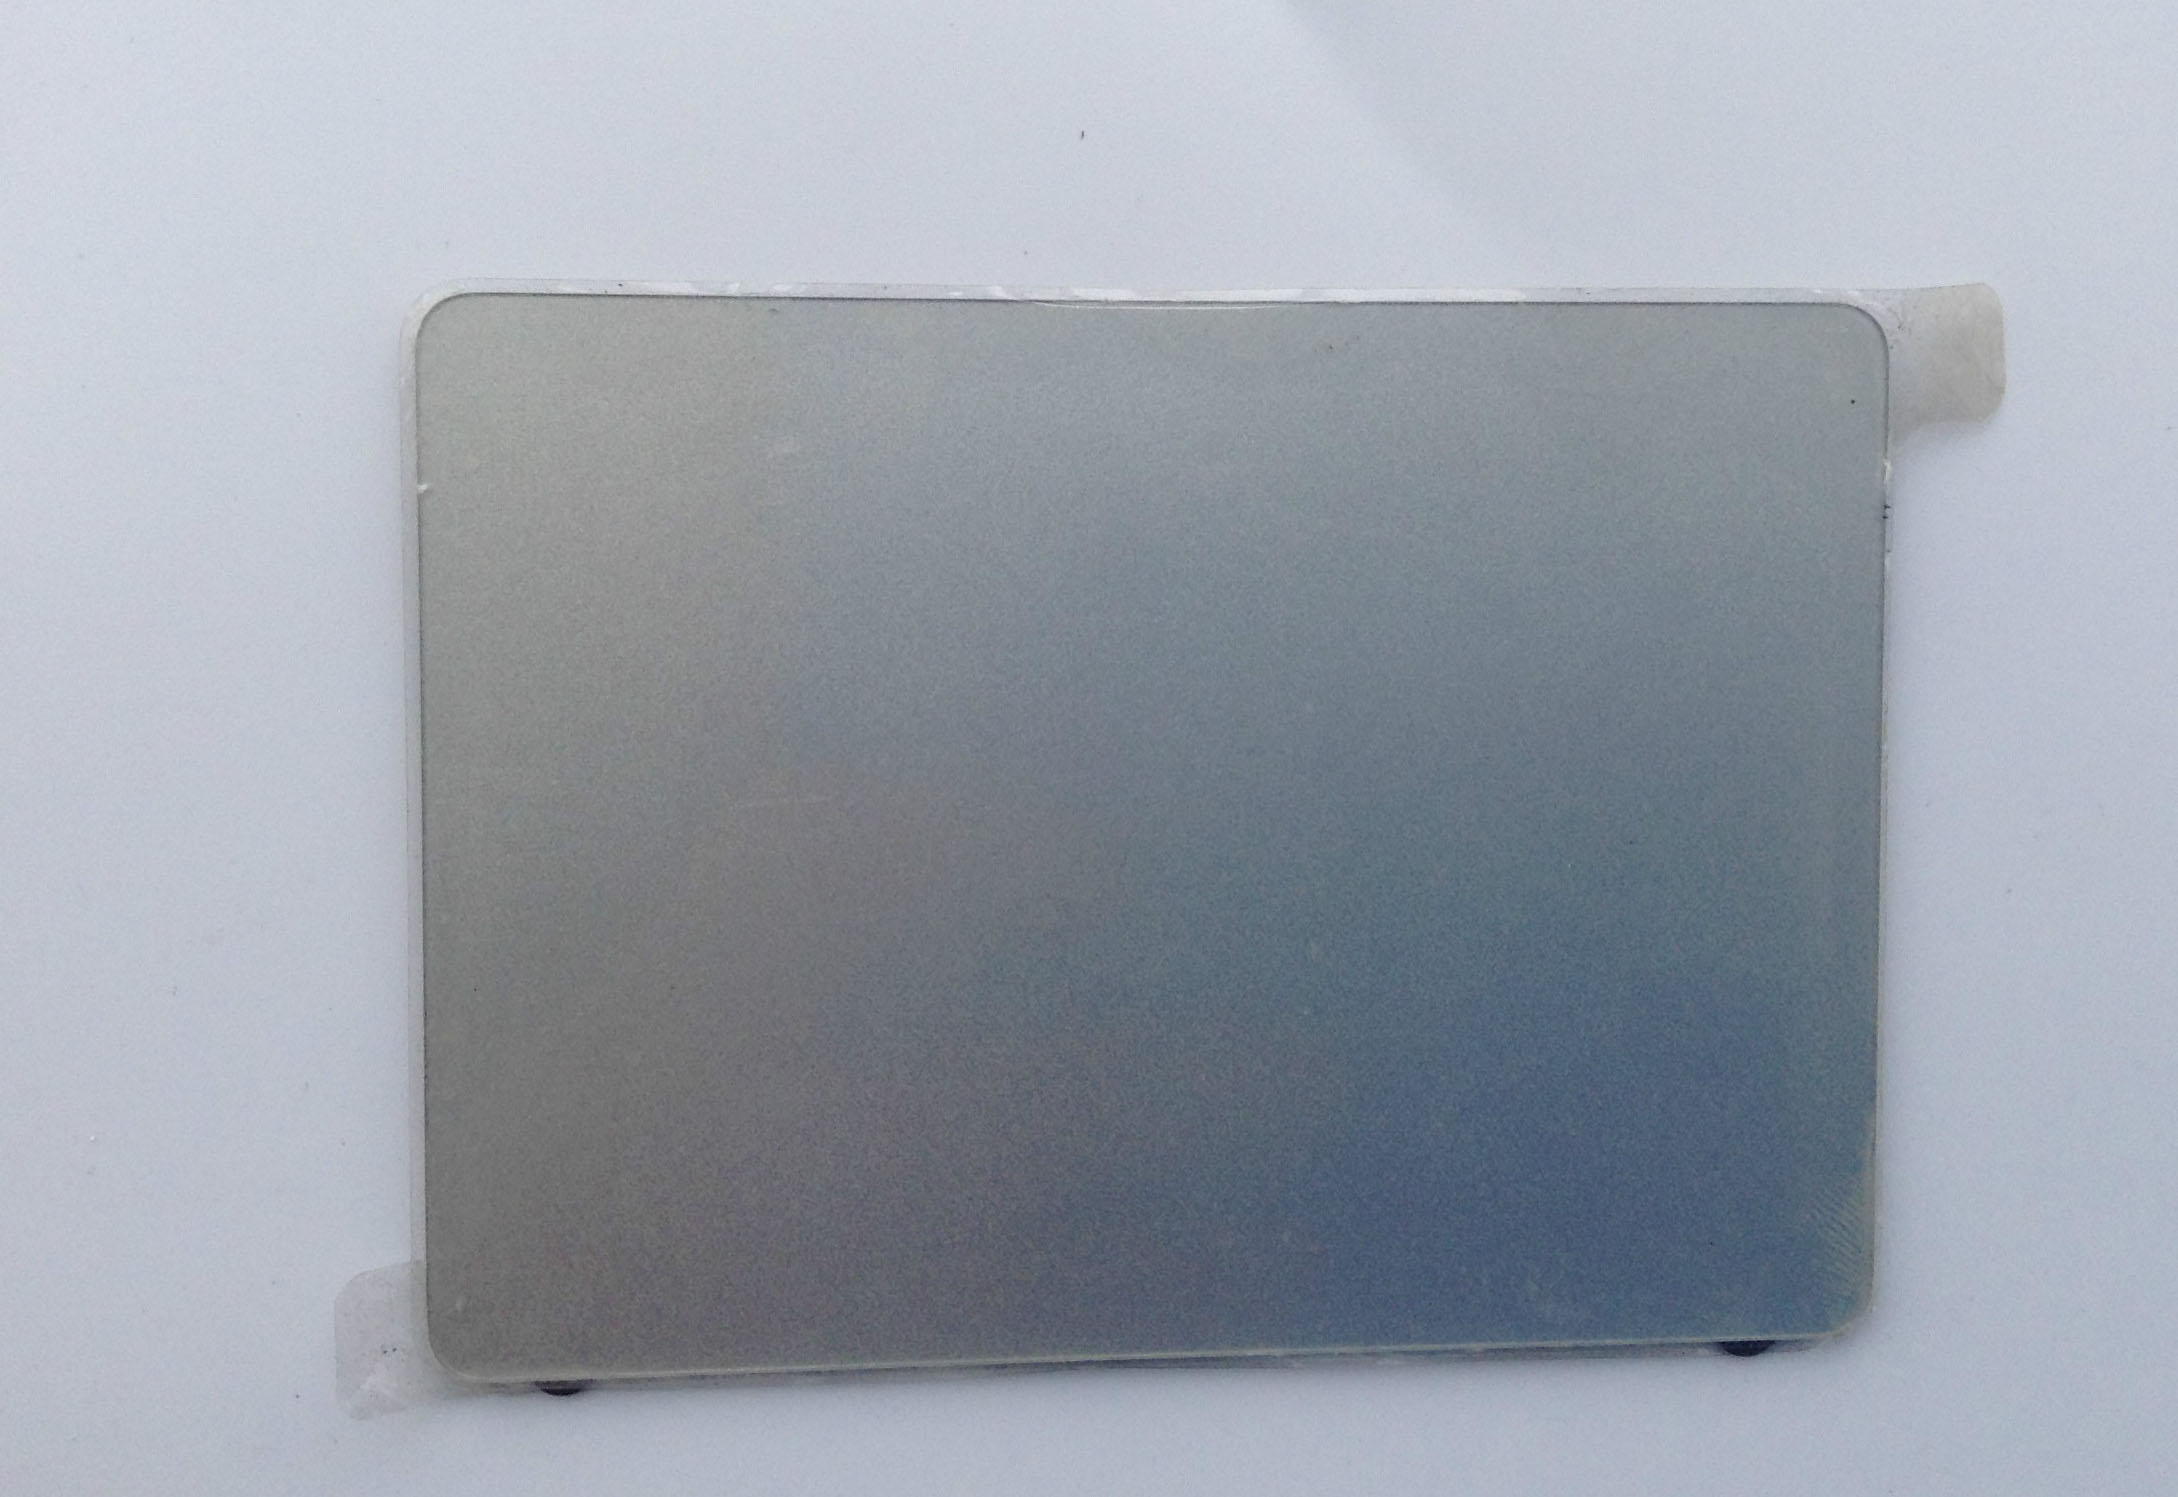 TRACKPAD TOUCHPAD - Apple MacBook Pro 13 A1278 and 15 A1286  2009 2010 2011 2012